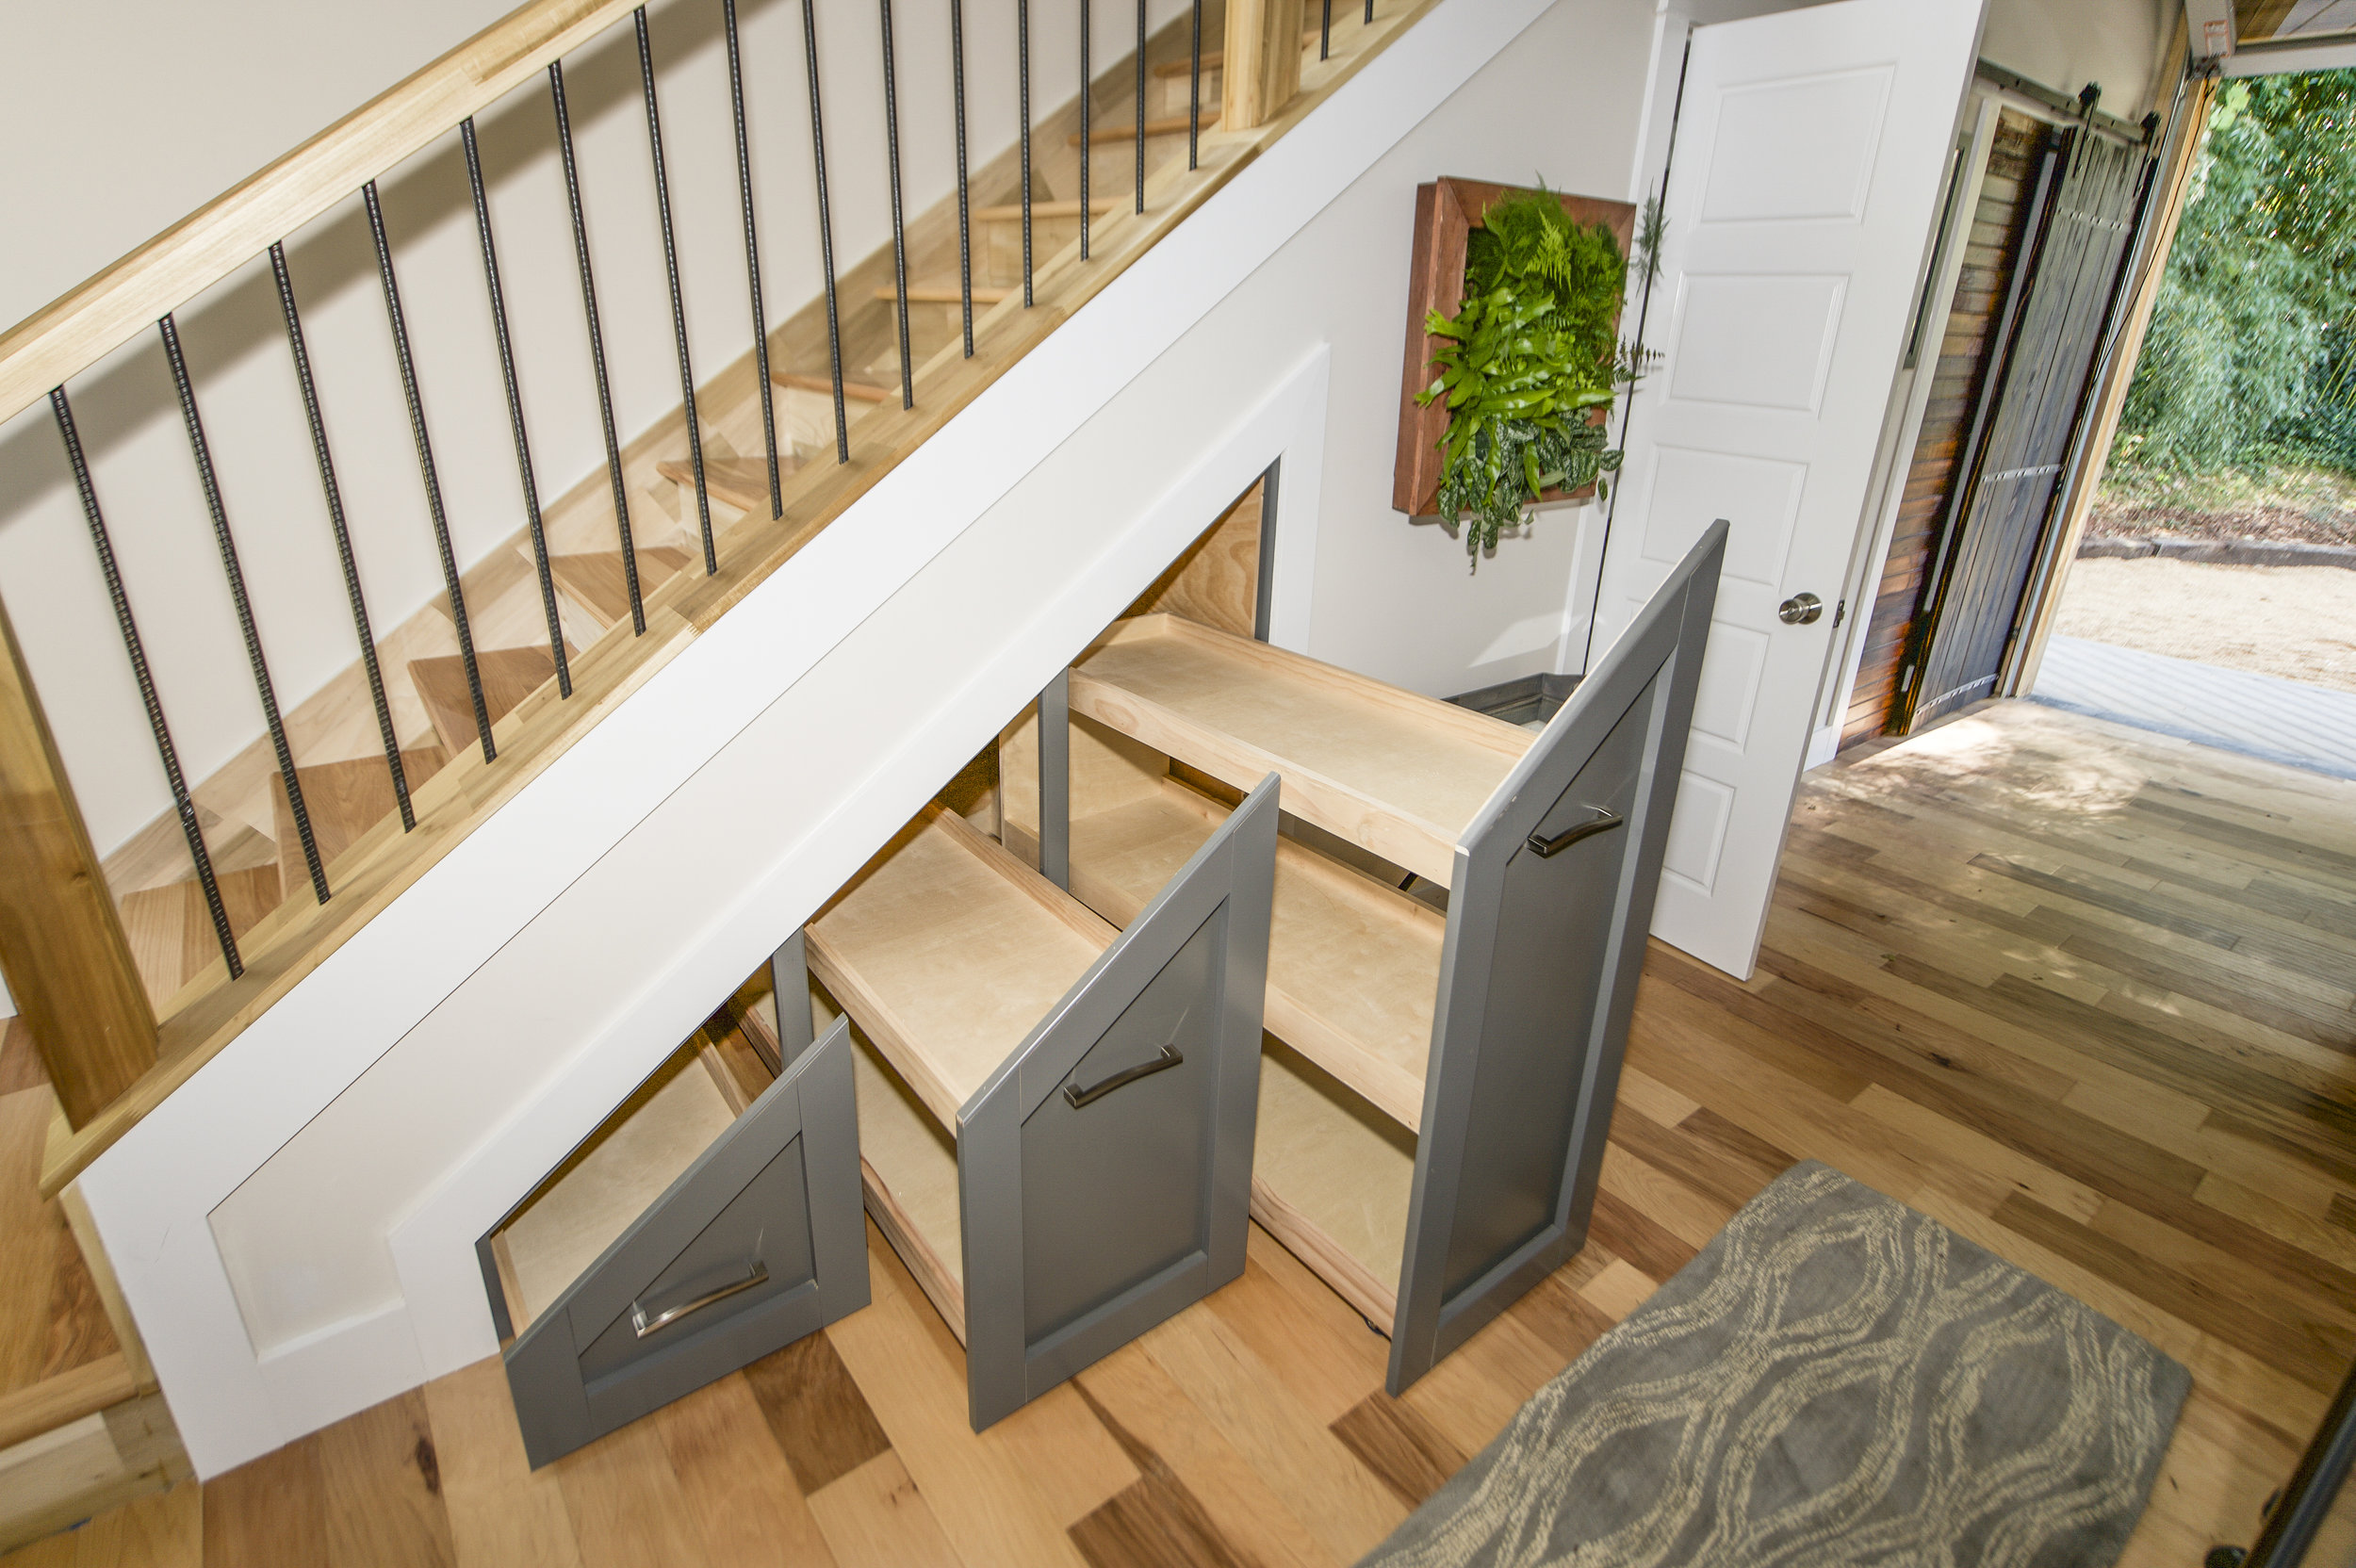 Urban Micro Home by Wind River Tiny Homes - custom pantry storage, under stair storage, pull out pantry, rebar spindles